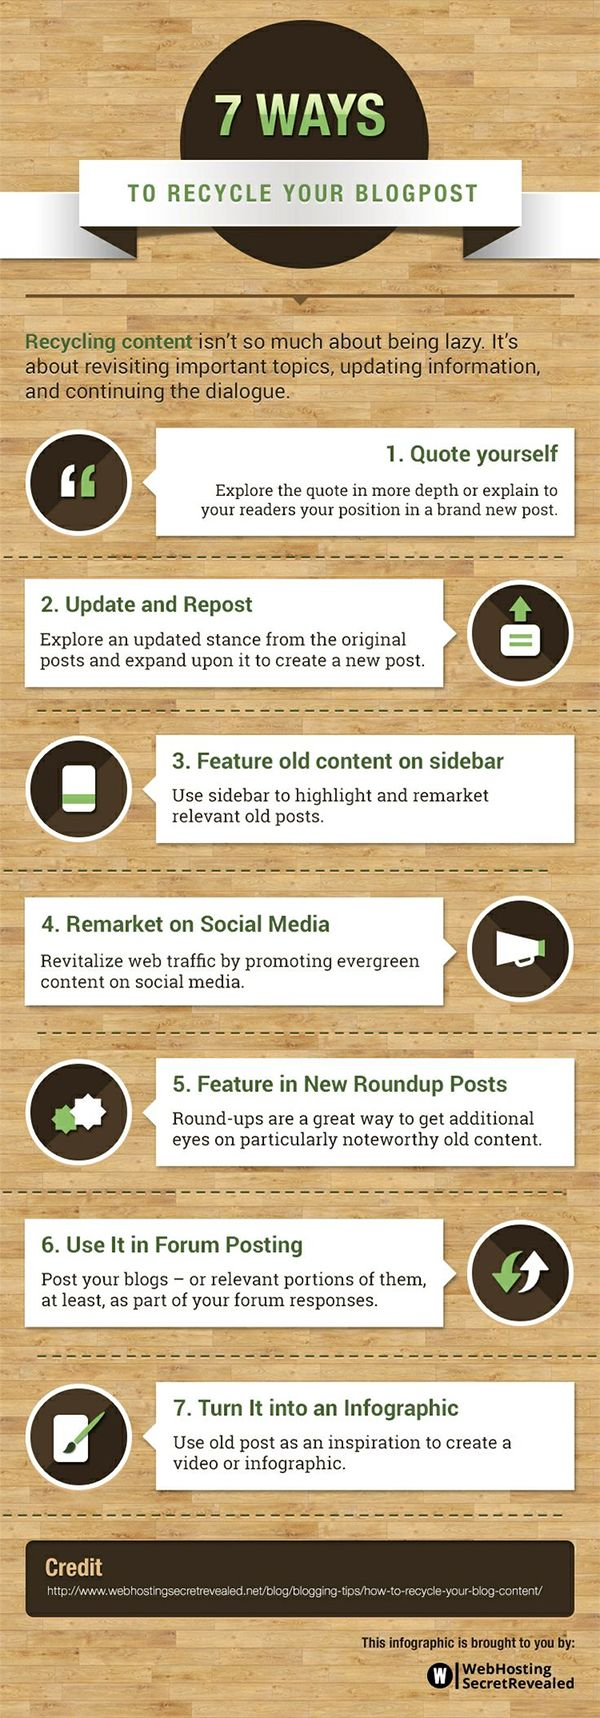 7 Ways to Recycle Old Blog Posts When You Can't Think of Anything New